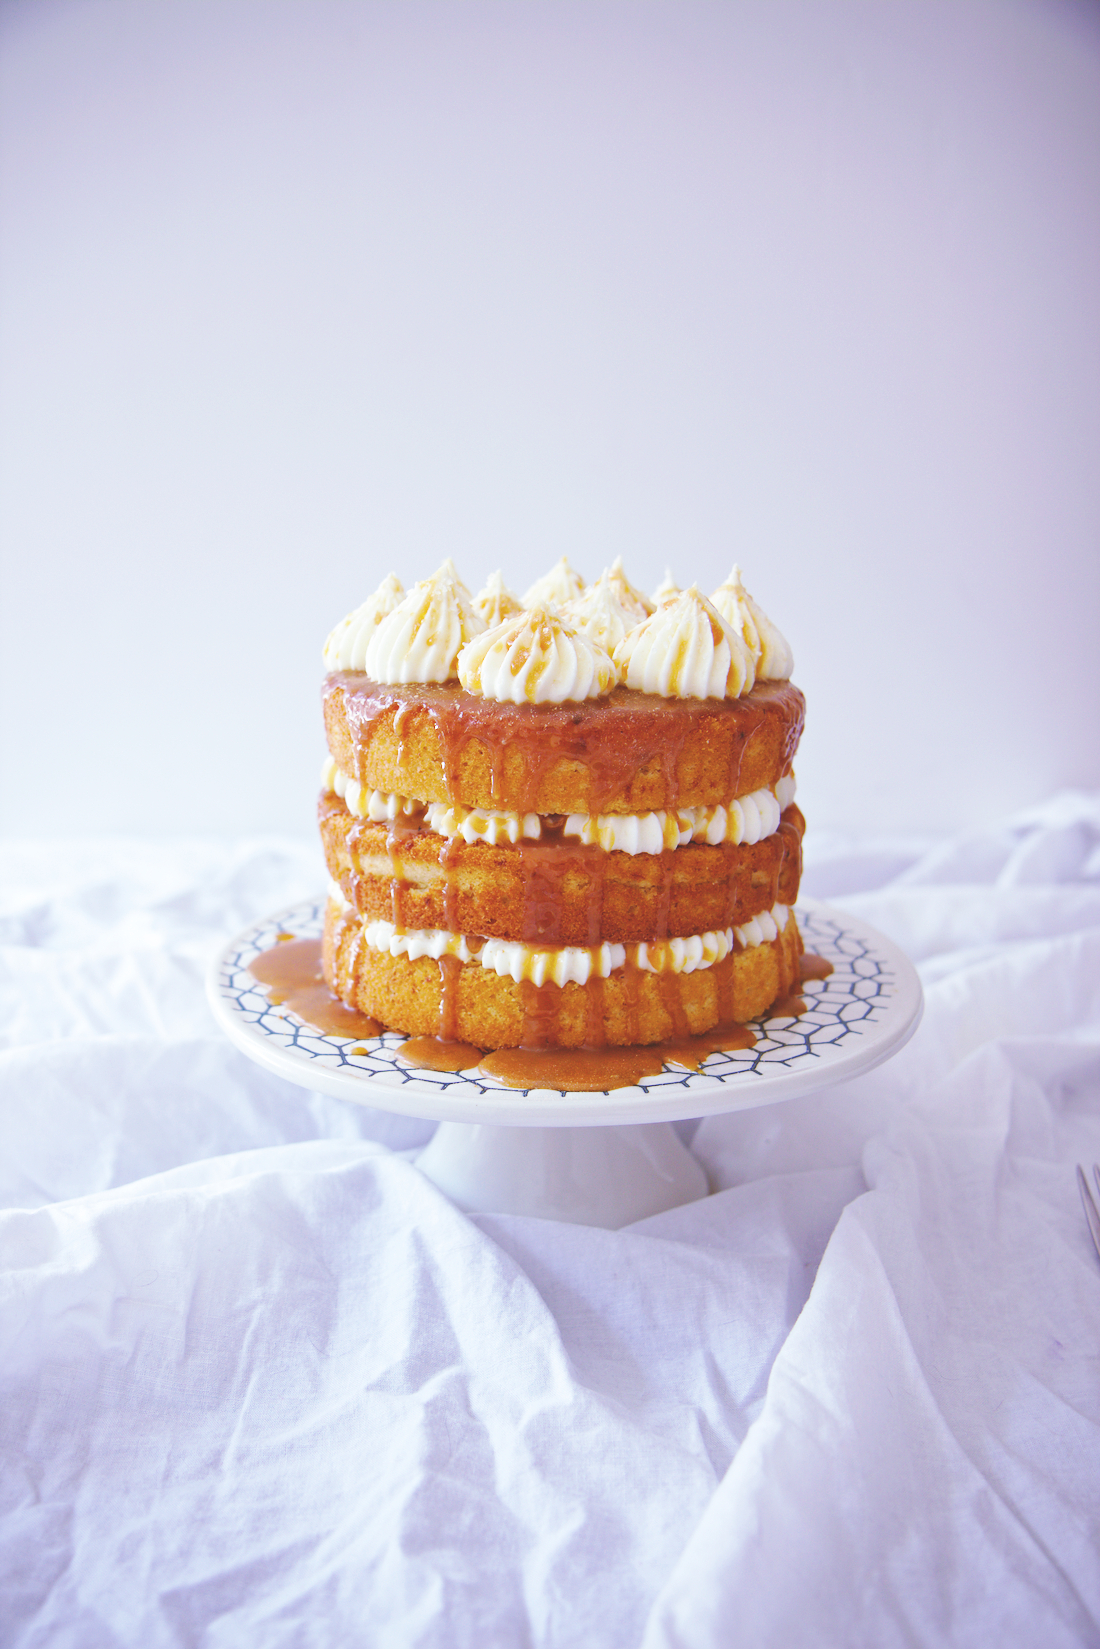 Cream Cheese and Salted Caramel Cake | La Pêche Fraîche